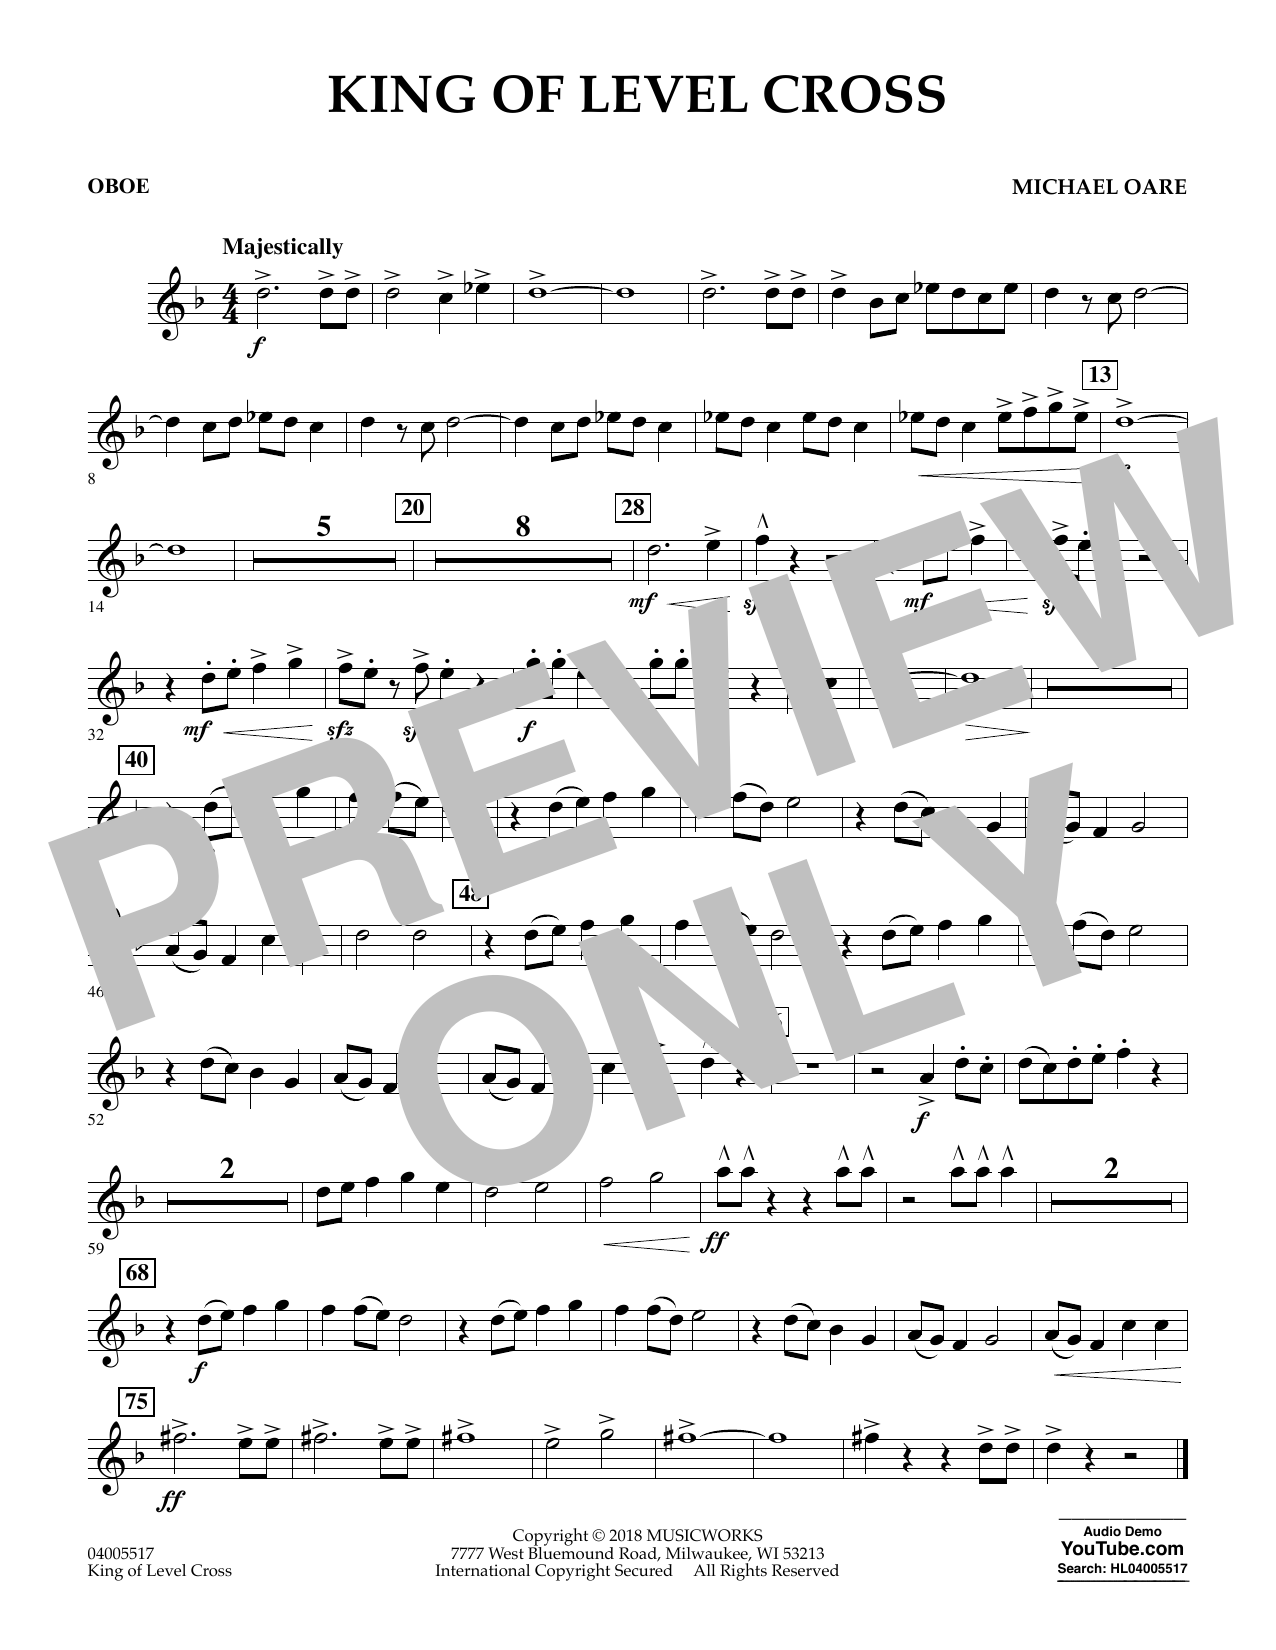 Michael Oare King of Level Cross - Oboe sheet music notes and chords. Download Printable PDF.